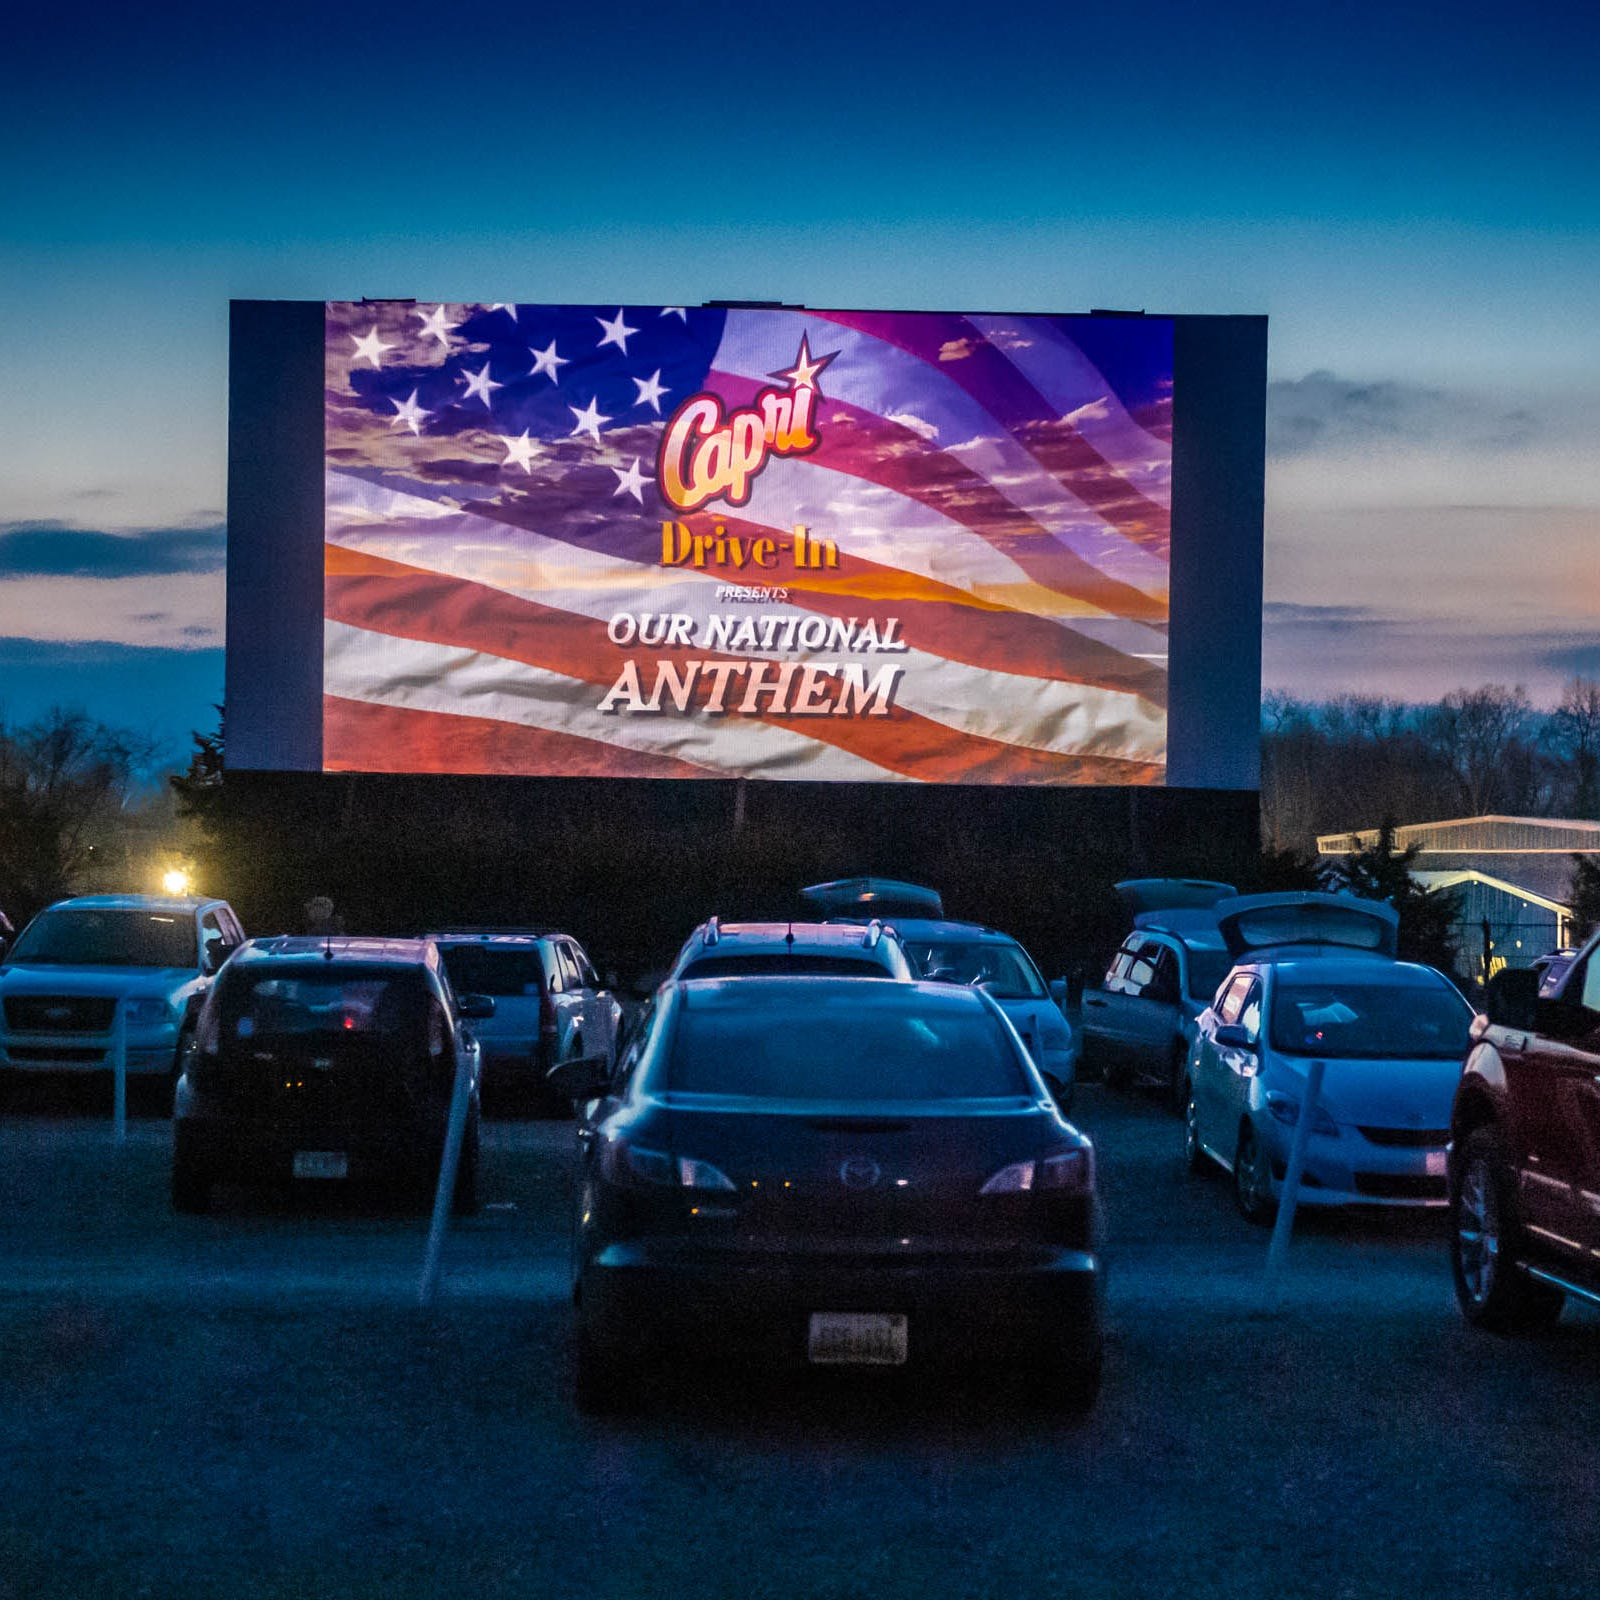 There were once 137 drive-ins in Michigan. Now there are 9.